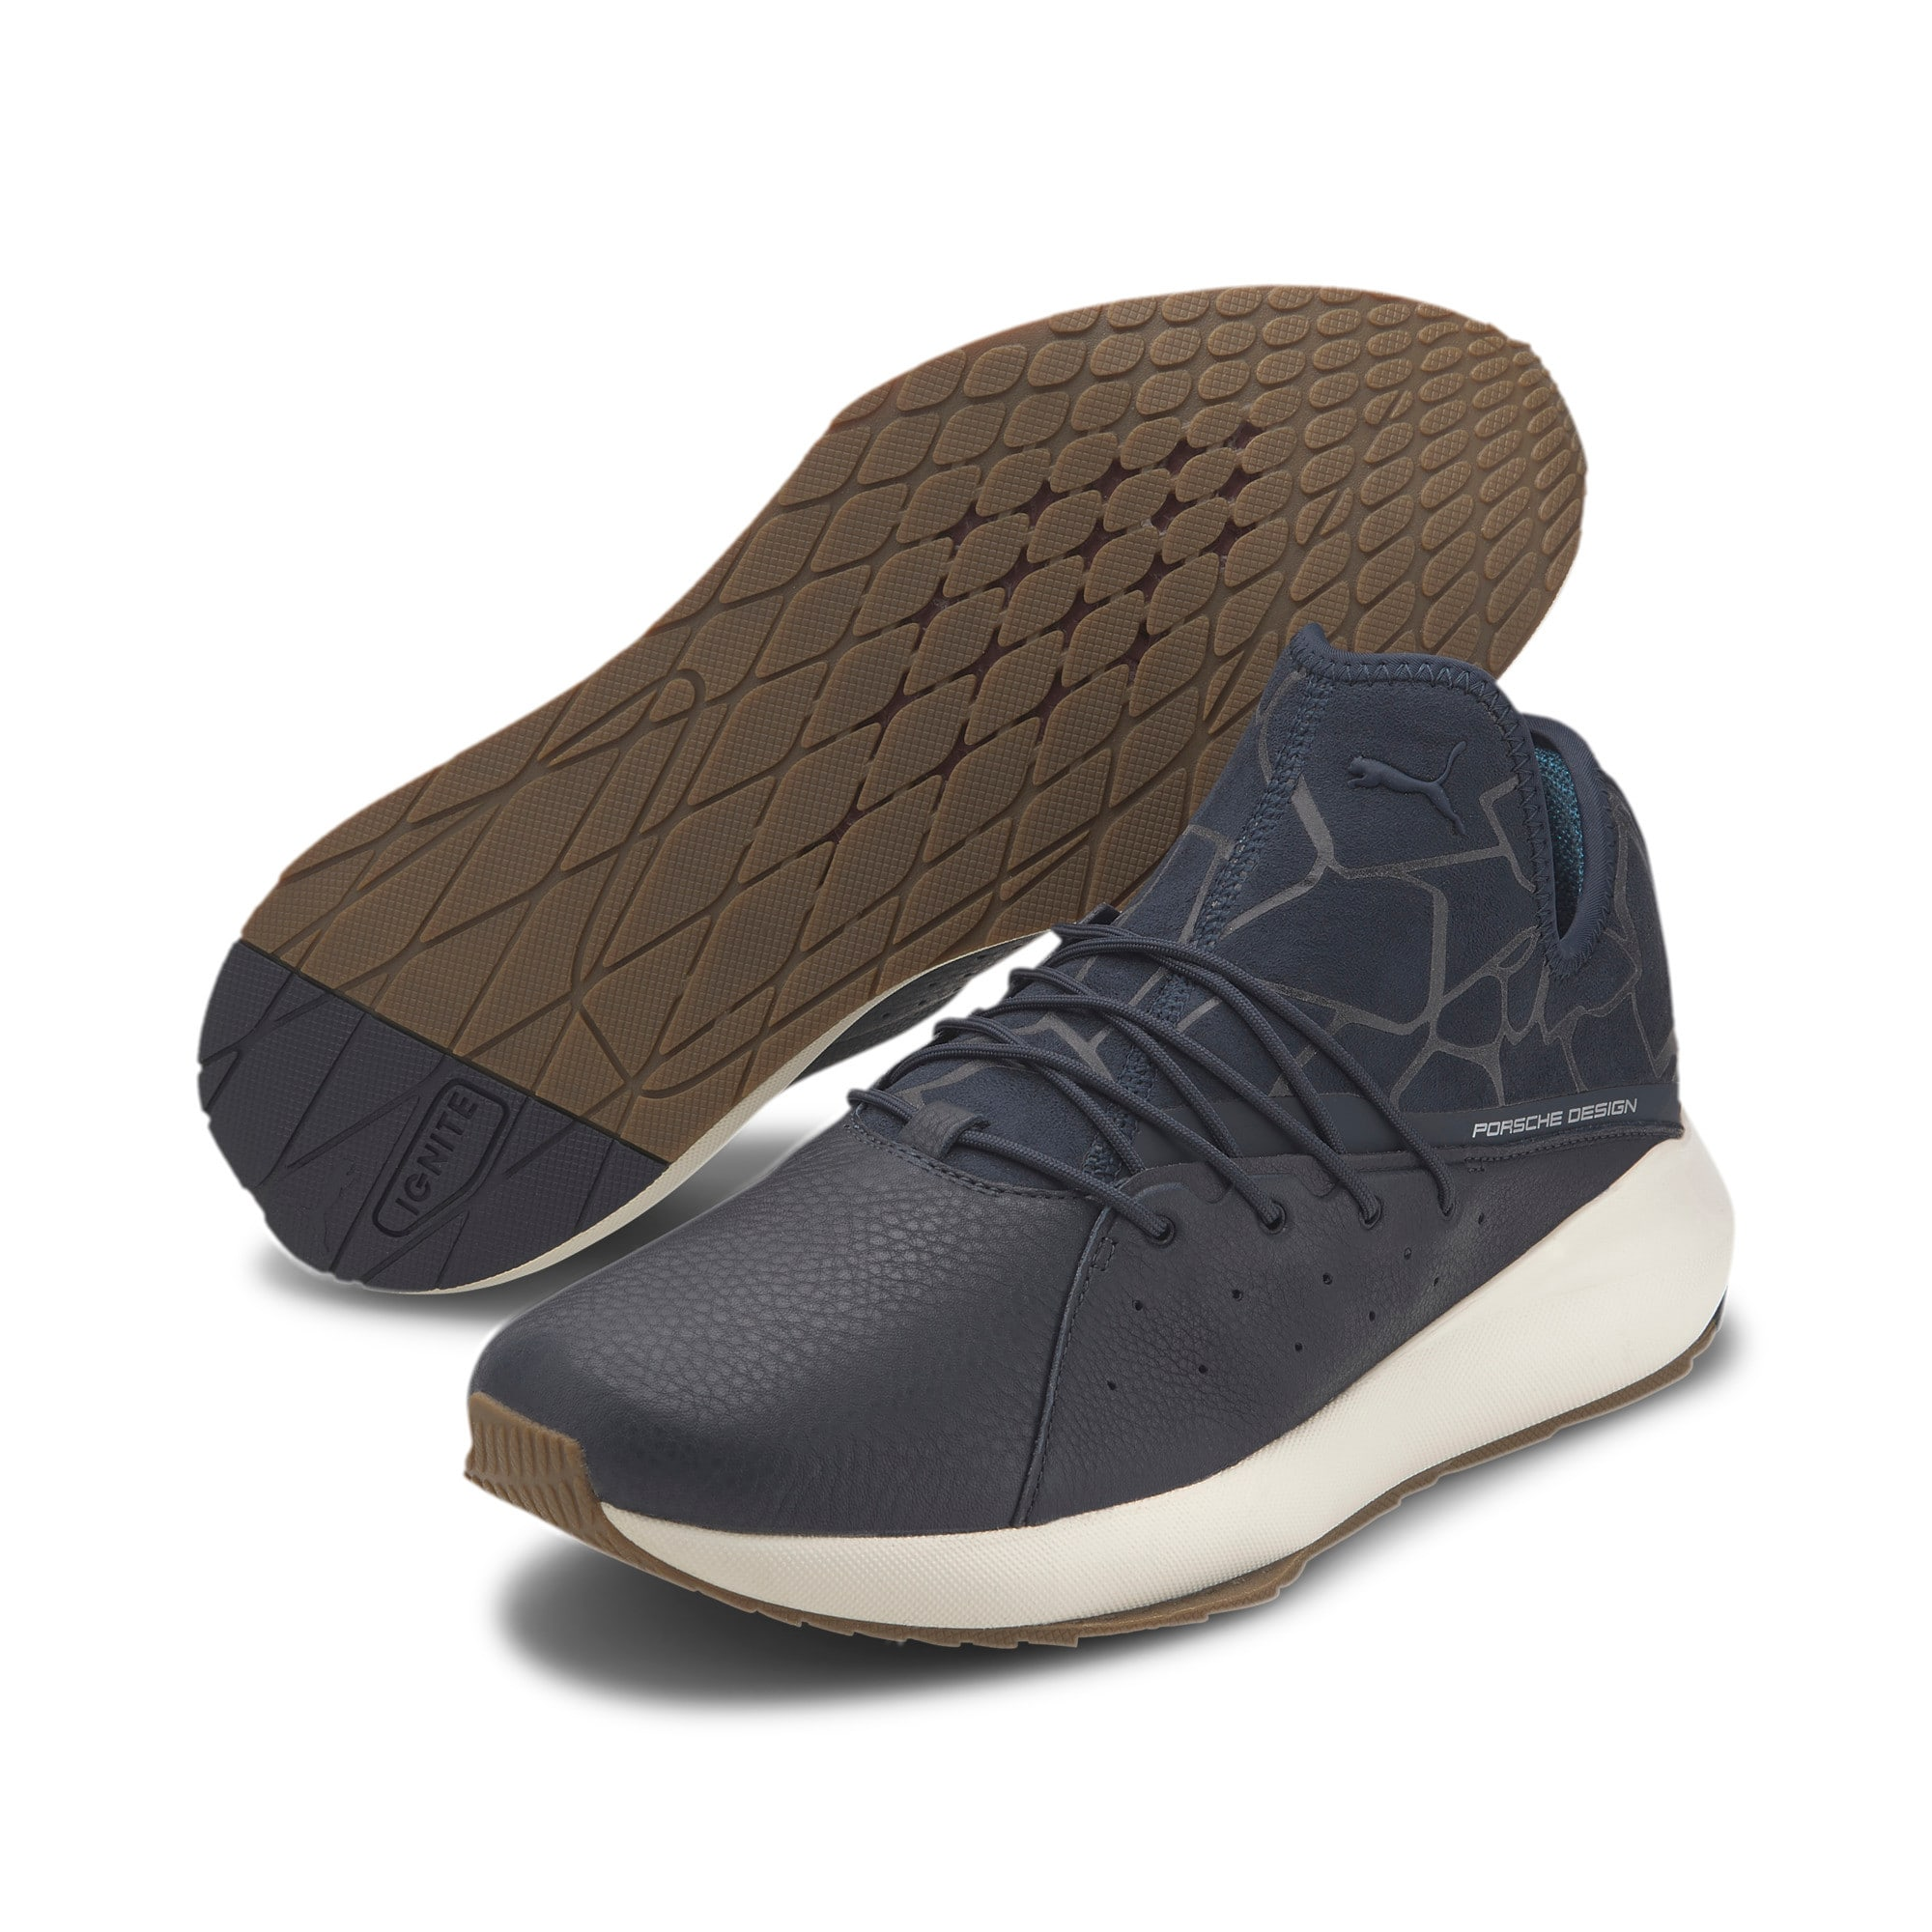 Thumbnail 3 of Porsche Design Evo Cat II Men's Training Shoes, Navy Blazer-Navy-WhisperW, medium